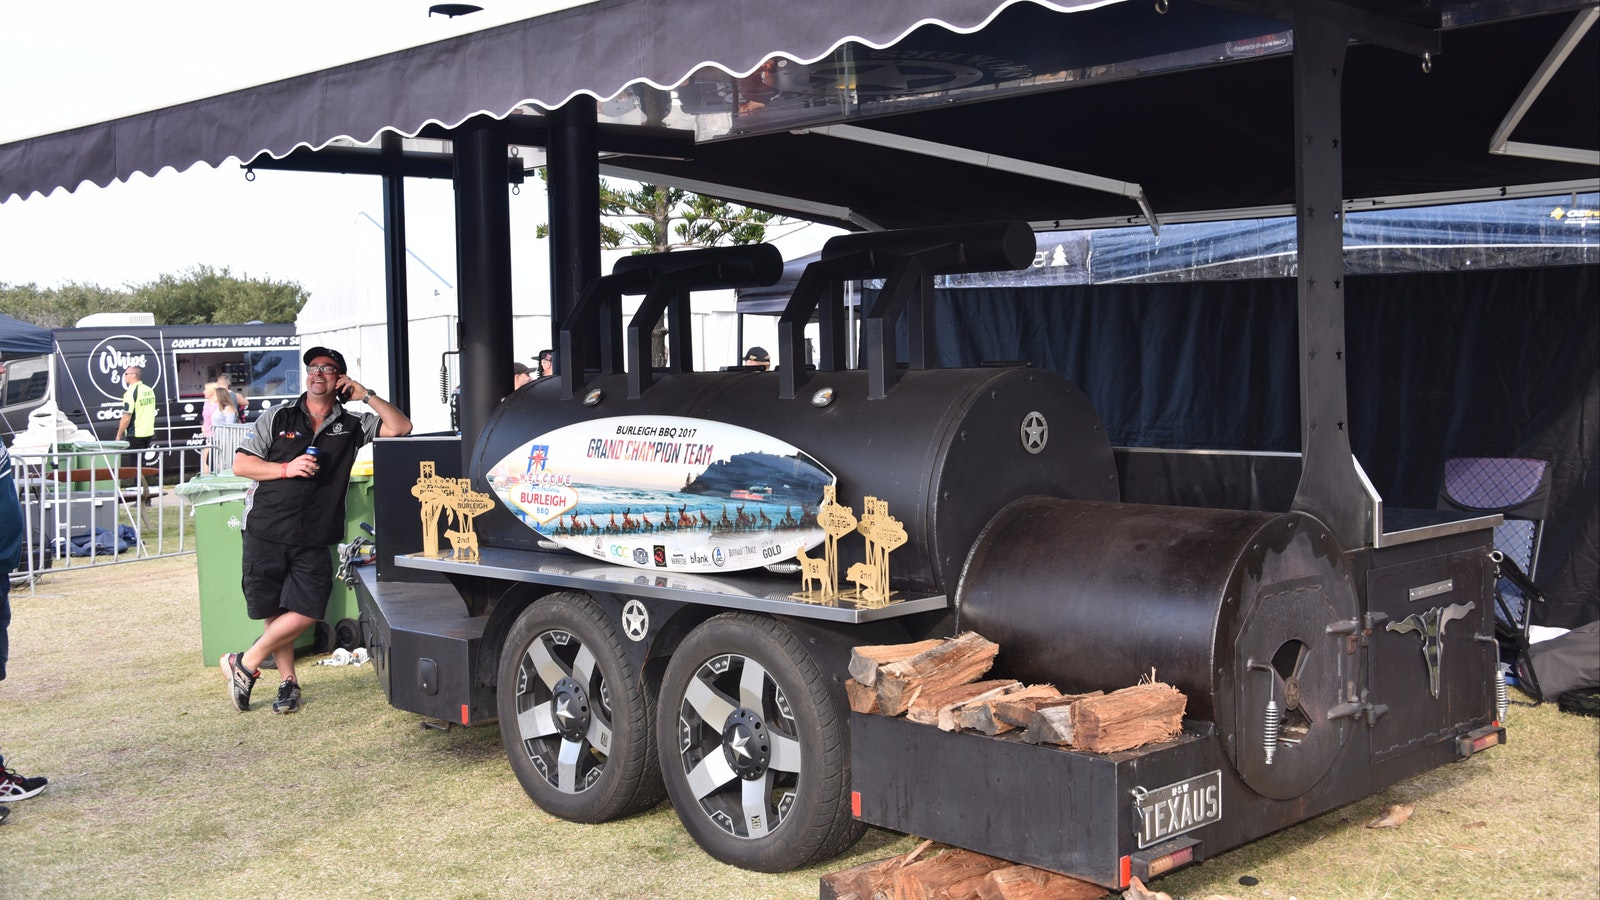 One of Australia's best competition barbecue setups